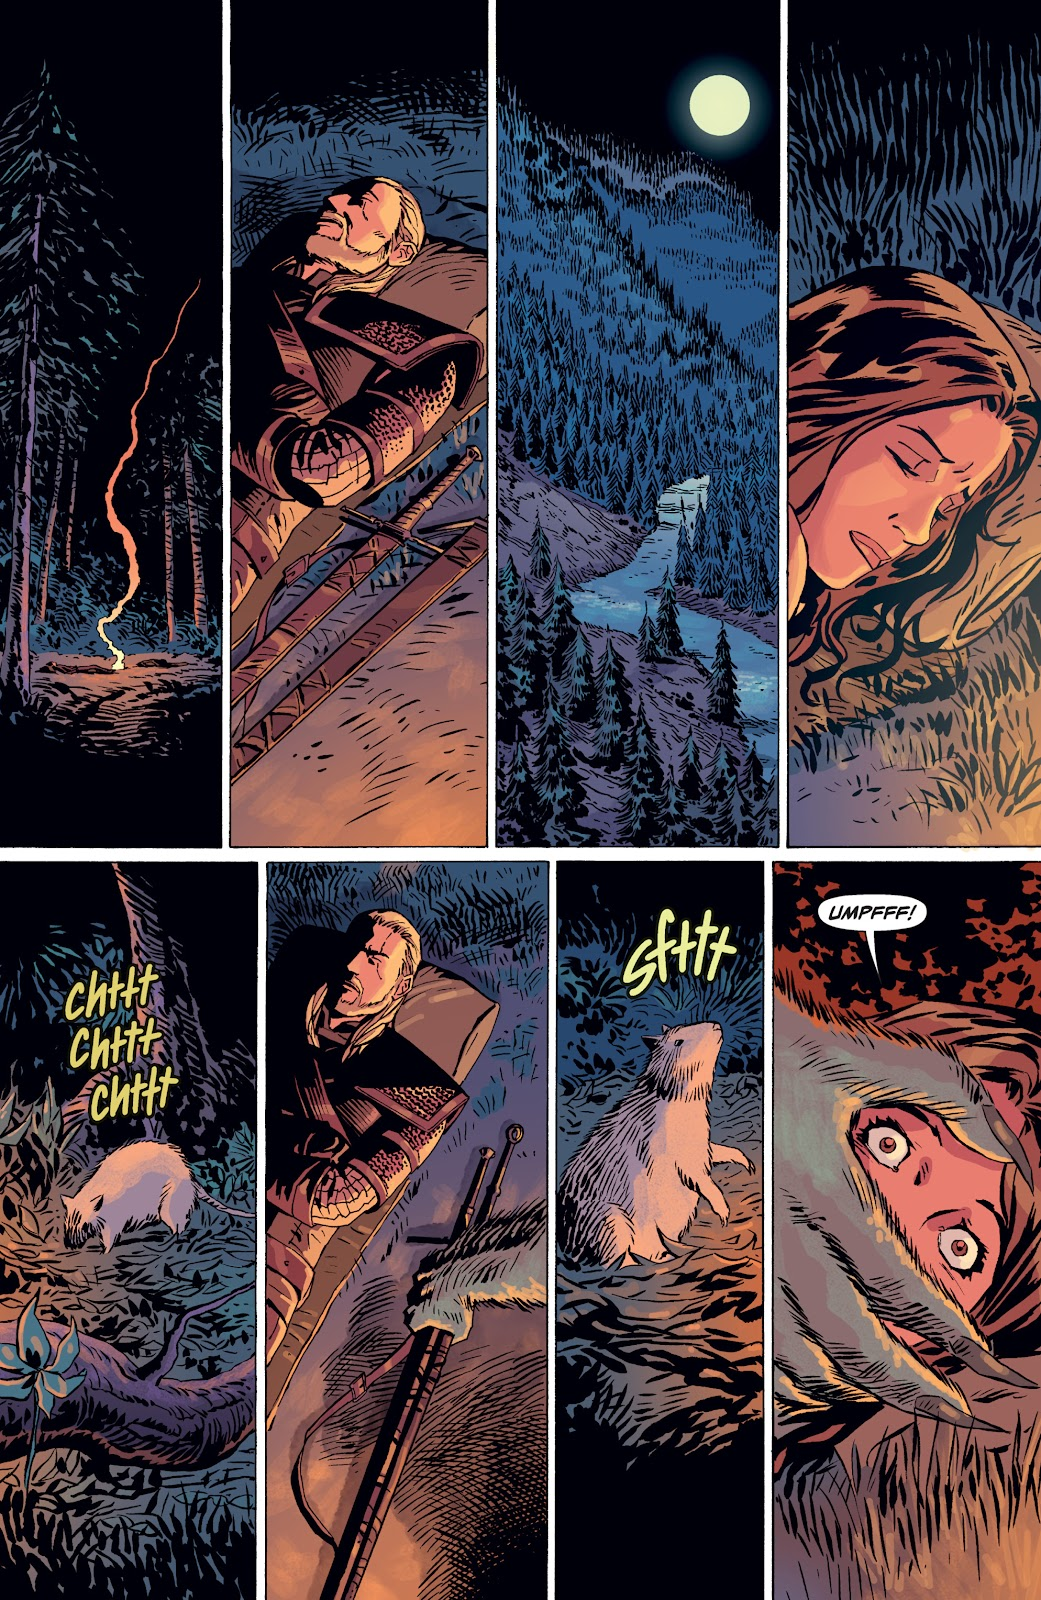 Read online The Witcher Omnibus comic -  Issue # TPB (Part 4) - 11